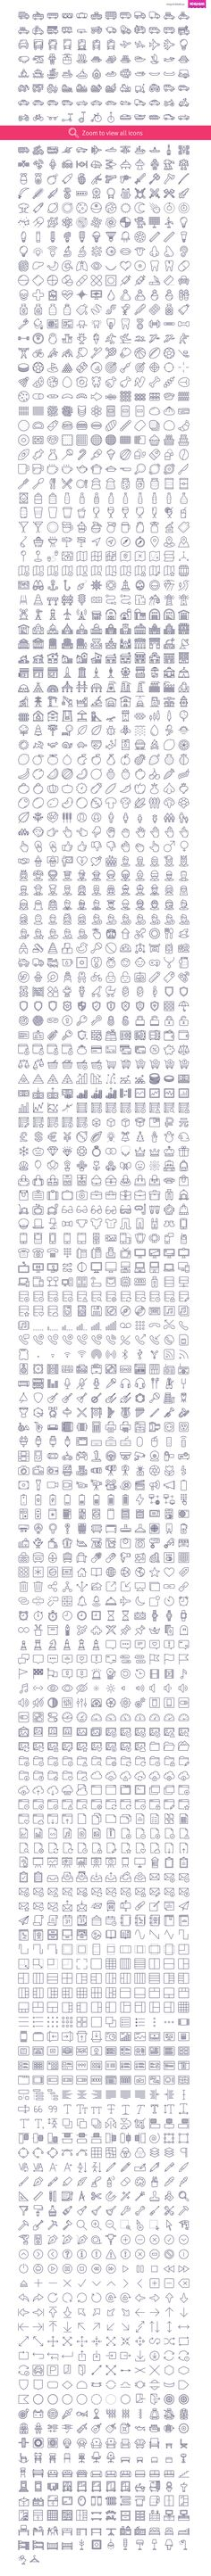 2090 icons in UniGrid set by Icojam on Creative Market